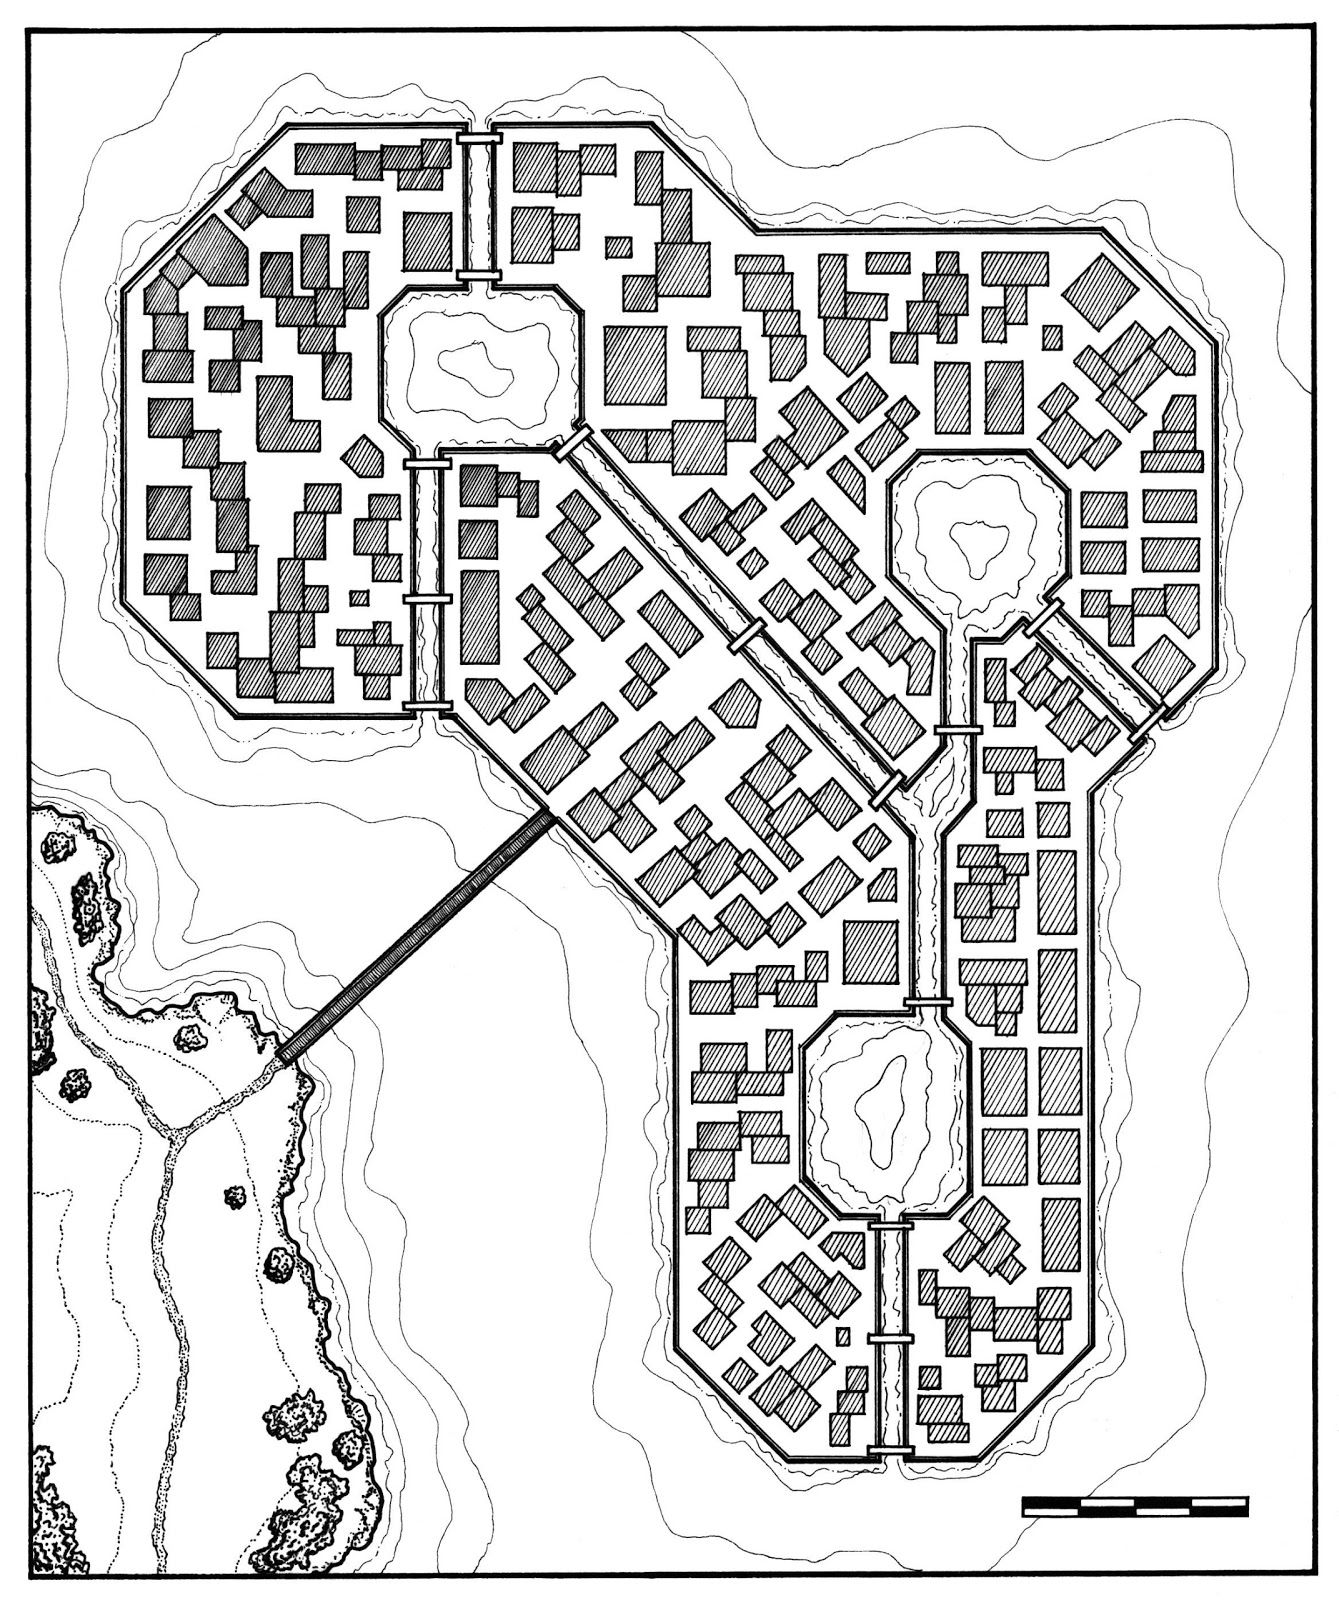 Pin By Travis Rodgers On Fantasy Maps In